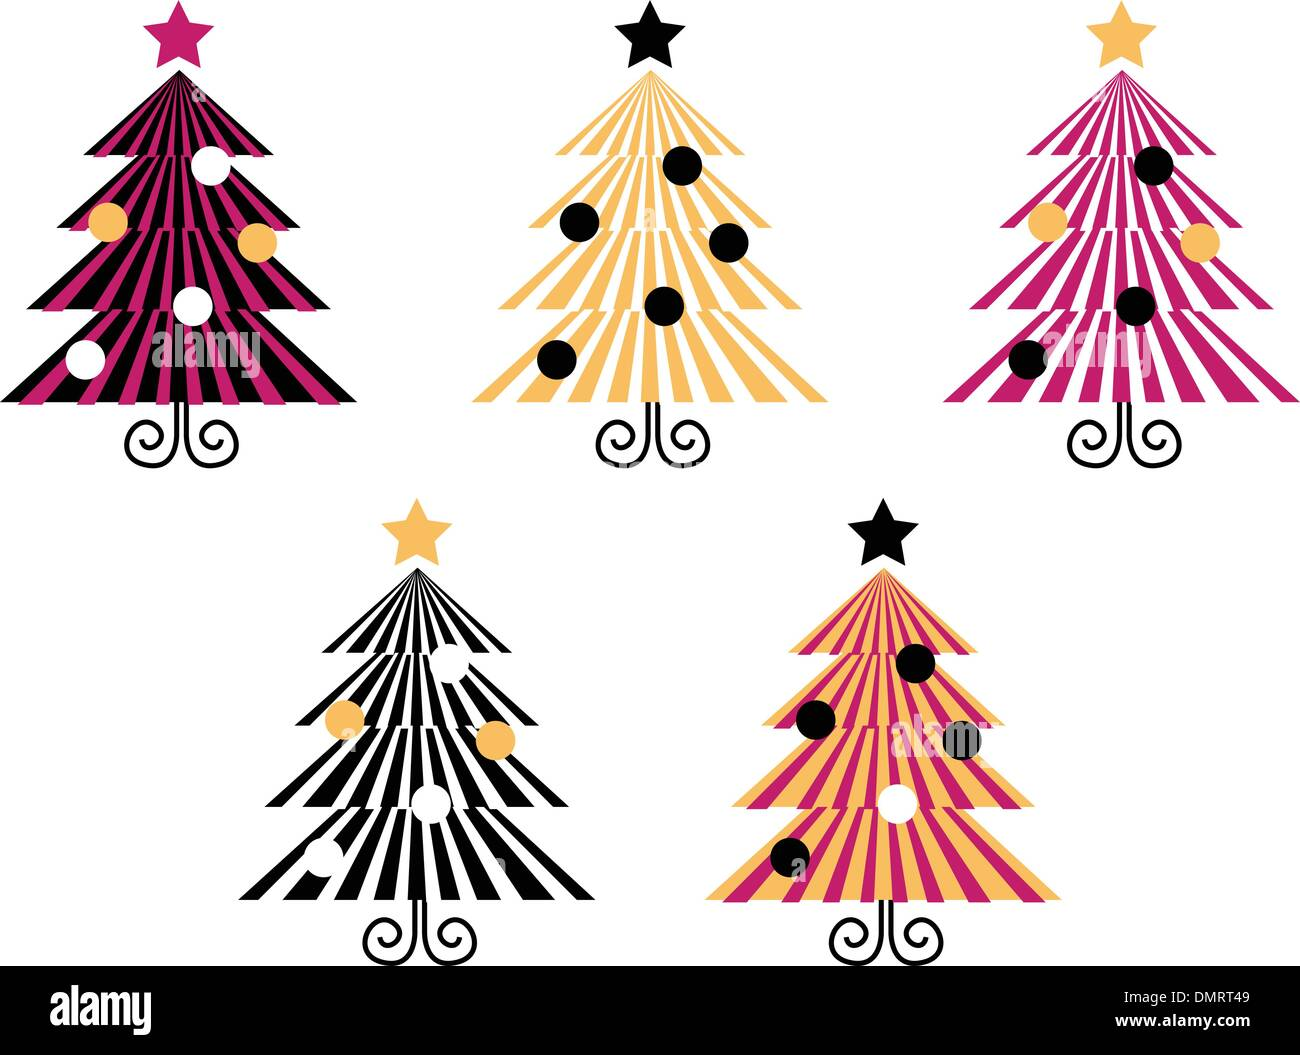 Retro Christmas Trees collection isolate on white - Stock Image